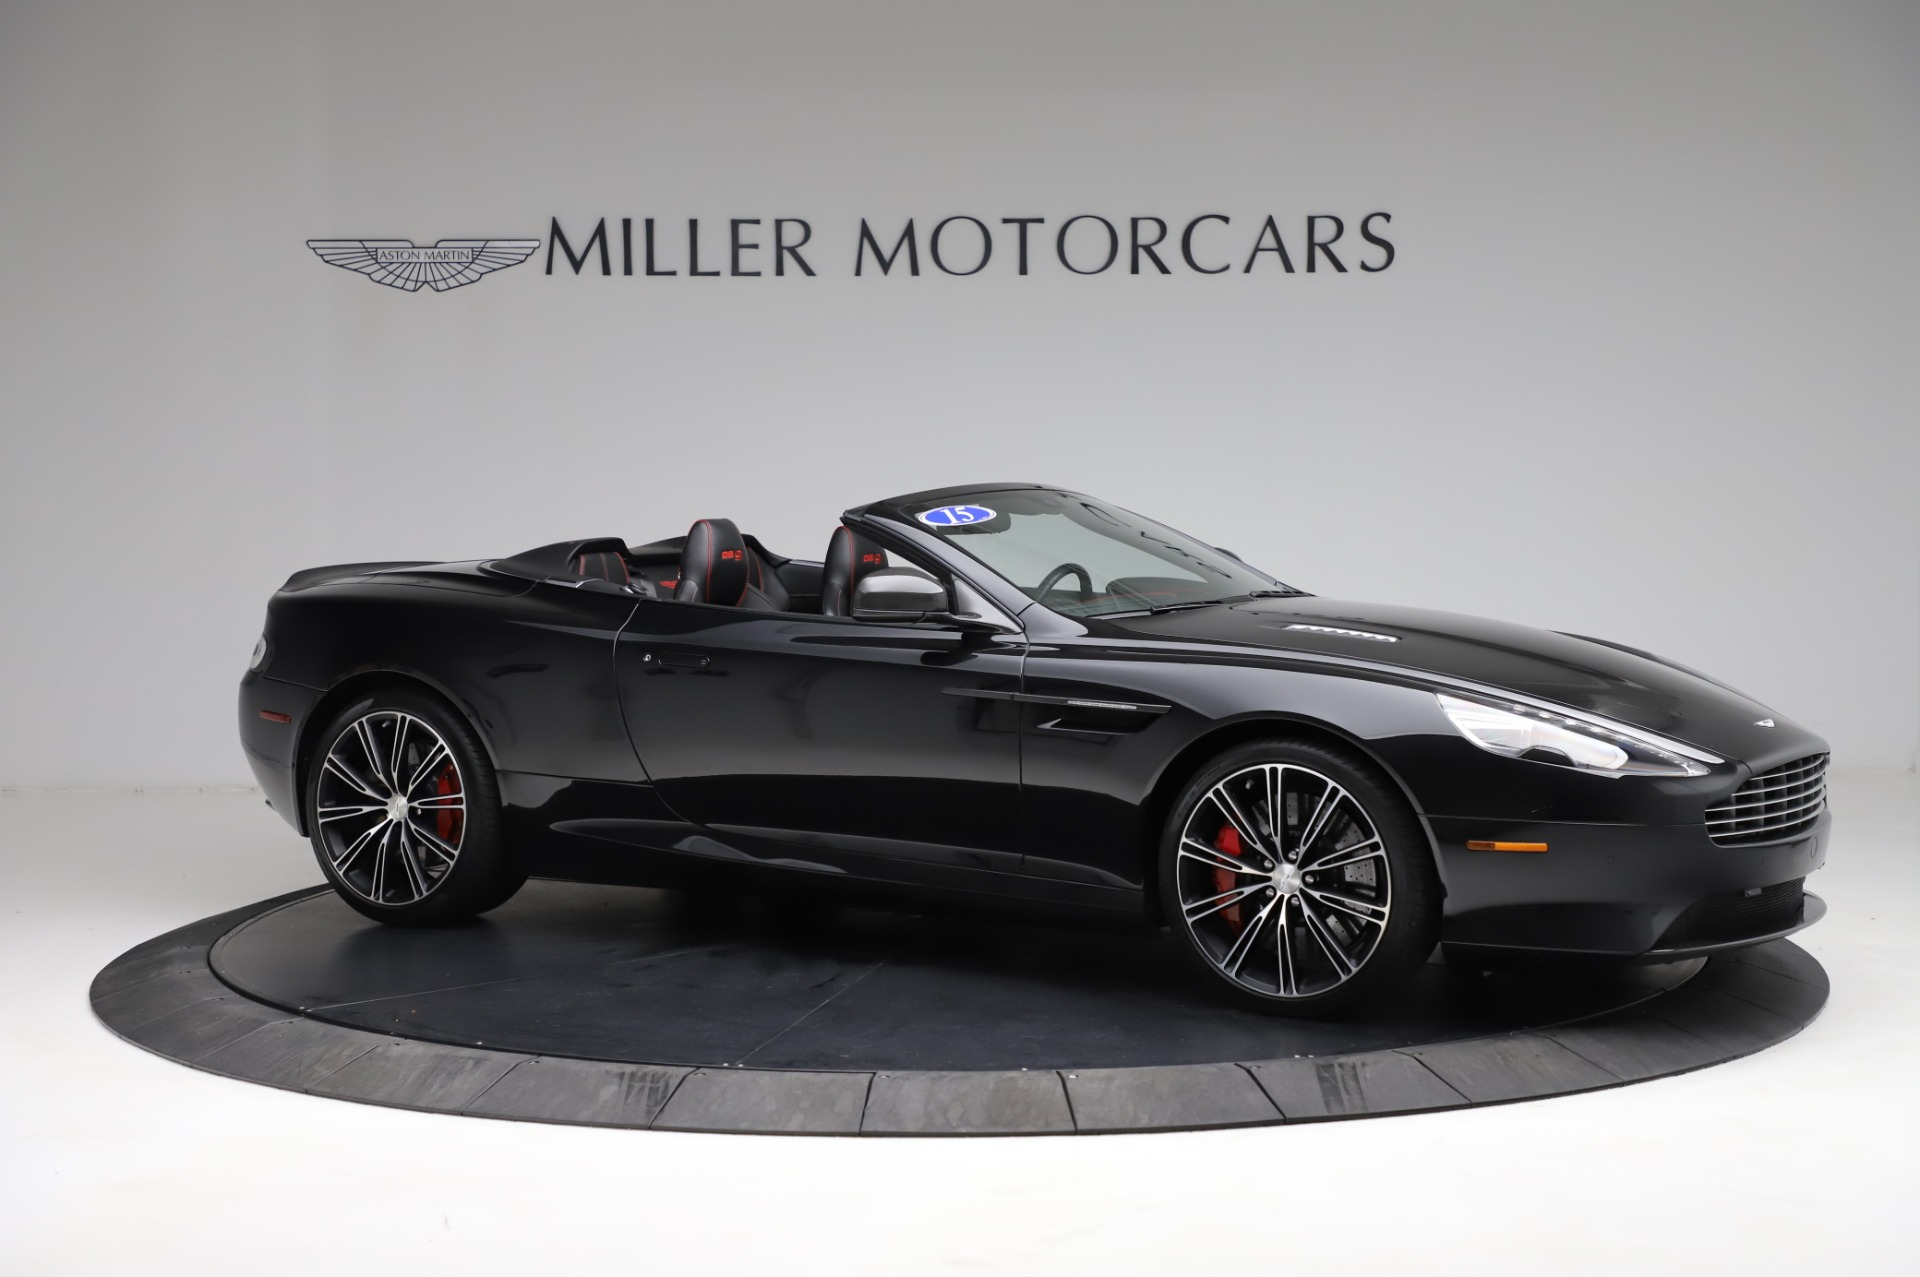 Used 2015 Aston Martin DB9 Carbon Edition Volante For Sale In Westport, CT 1919_p9